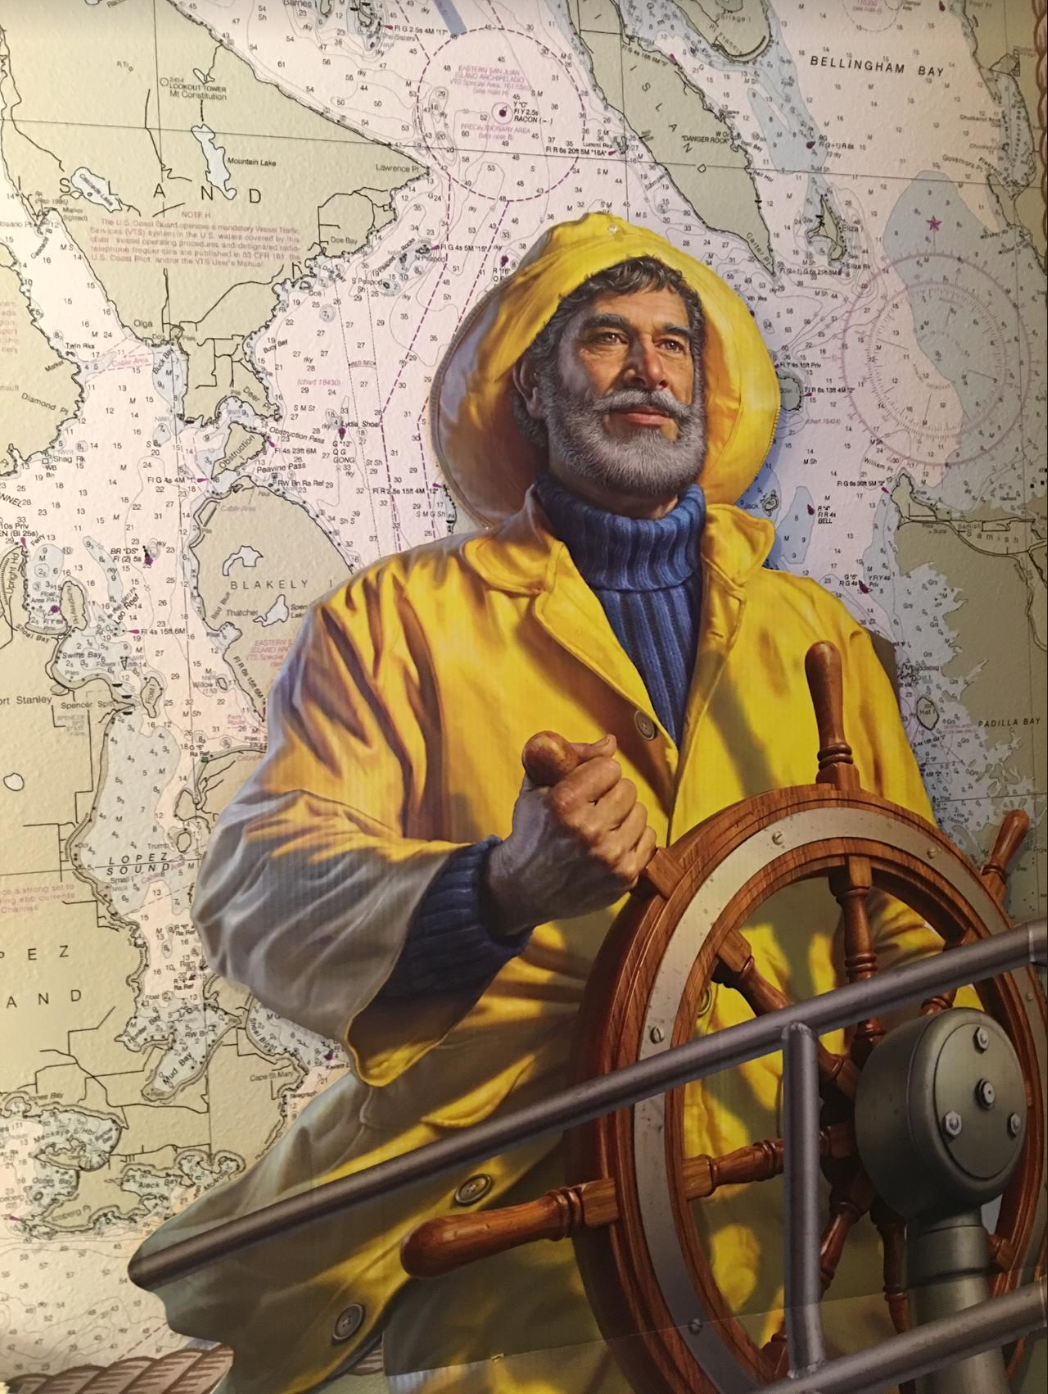 .  . . and after the Gorton's Fisherman finds new waters in which to sail.